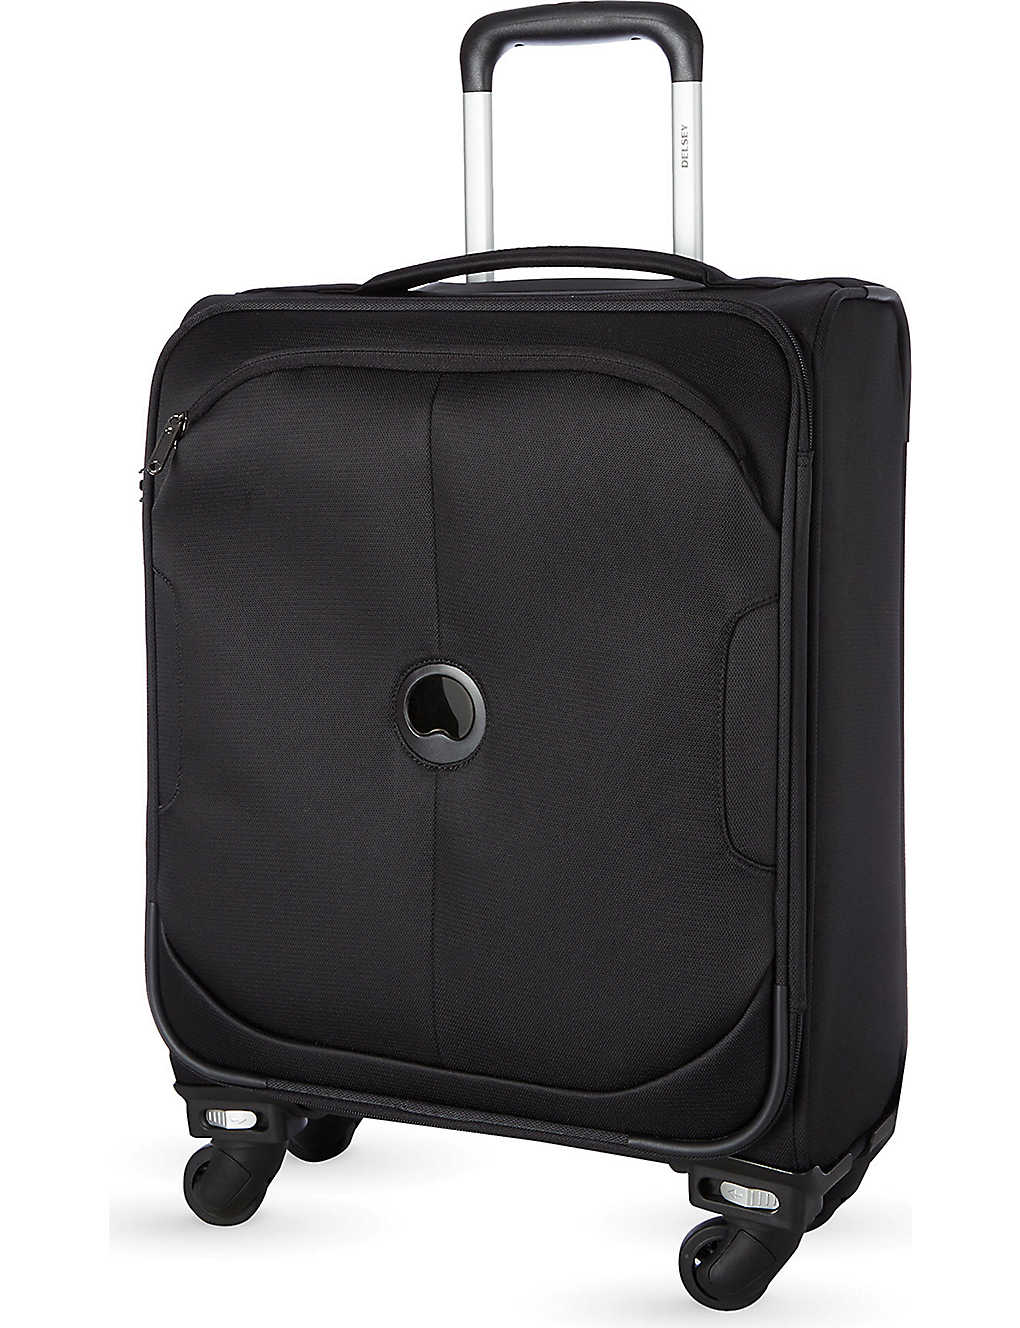 Delsey Trolley Bags Online India- Fenix Toulouse Handball ab2571cc1c7aa